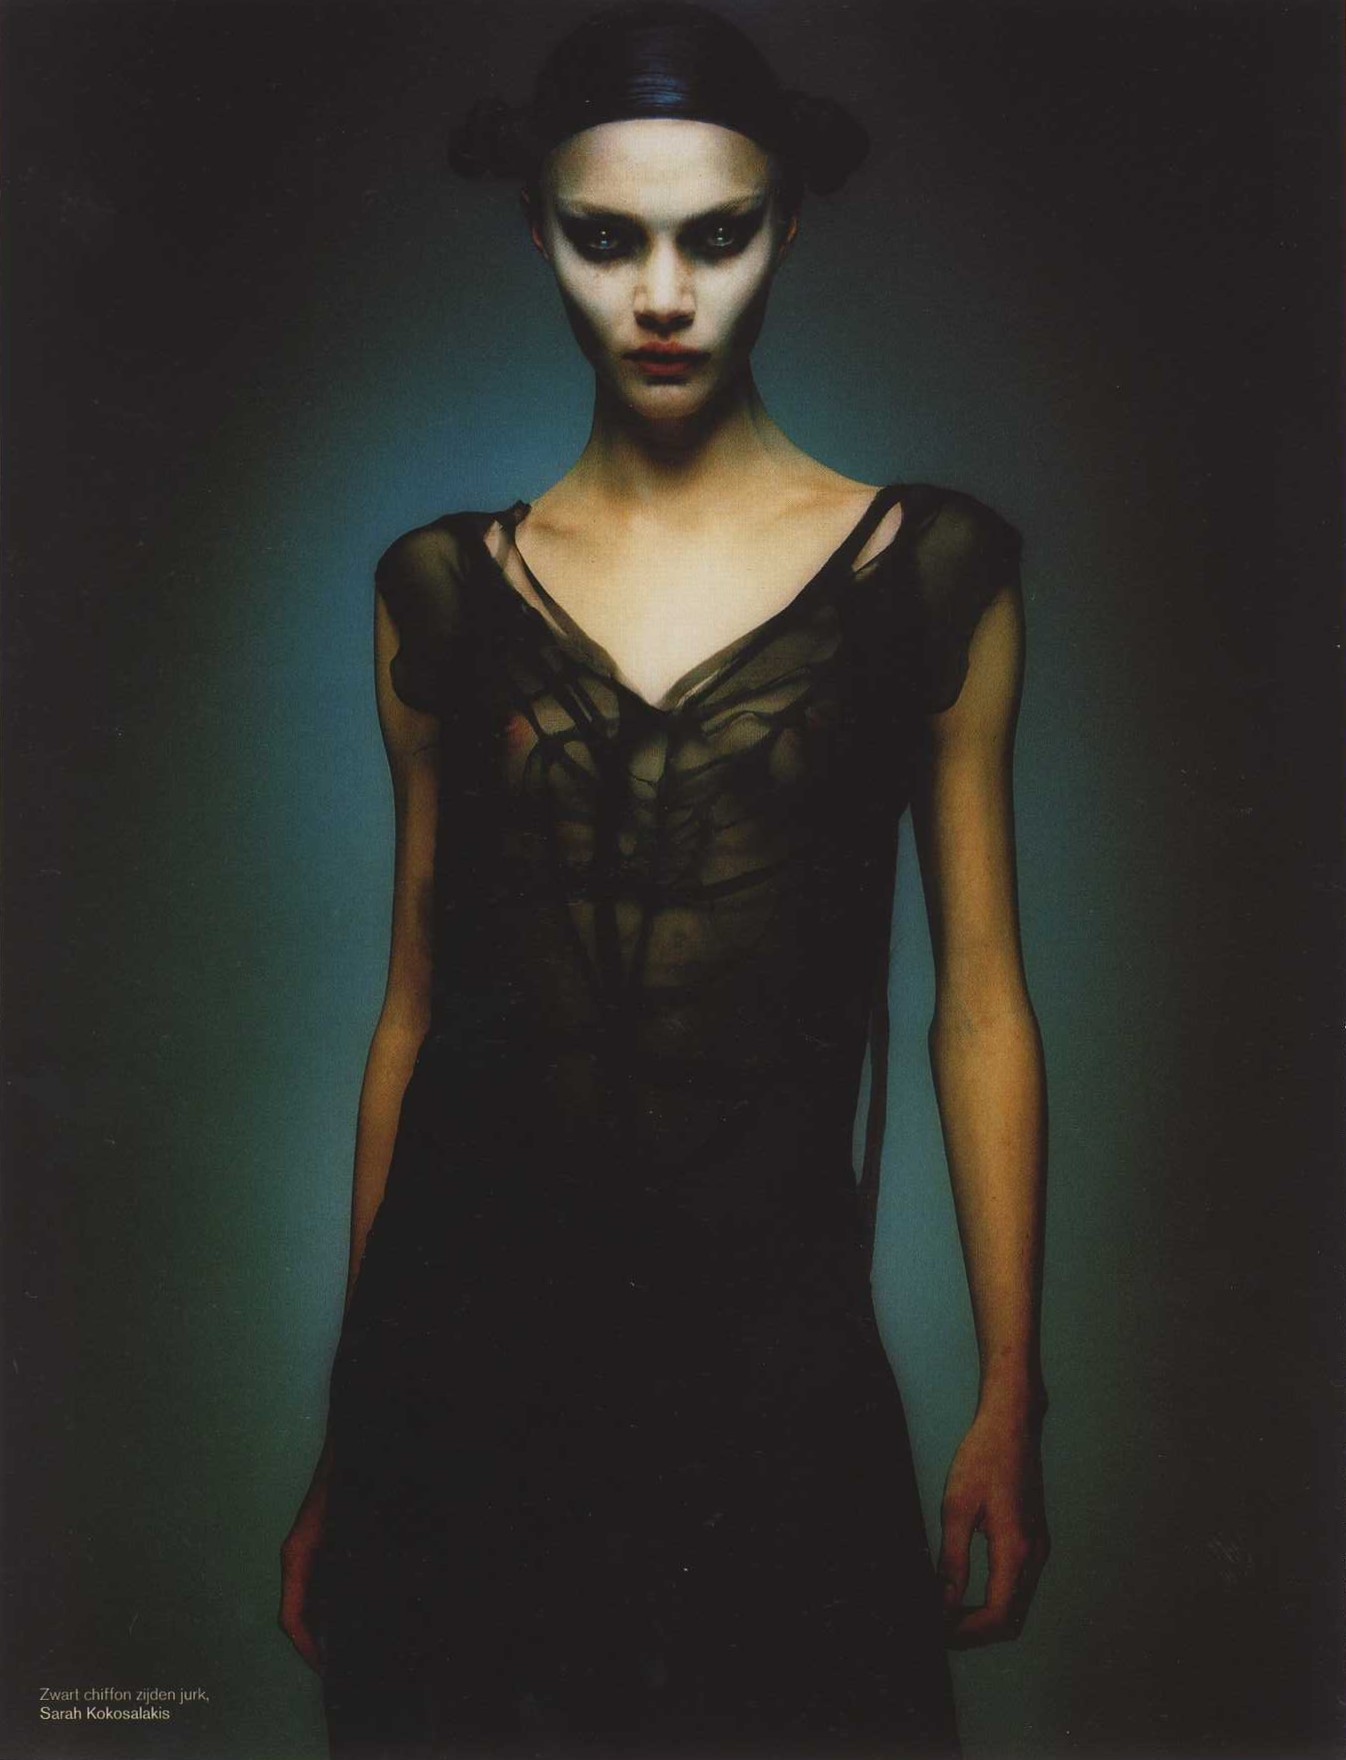 angloalien photography sean ellis styling isabella blow dutch 12 autumn 1997 2